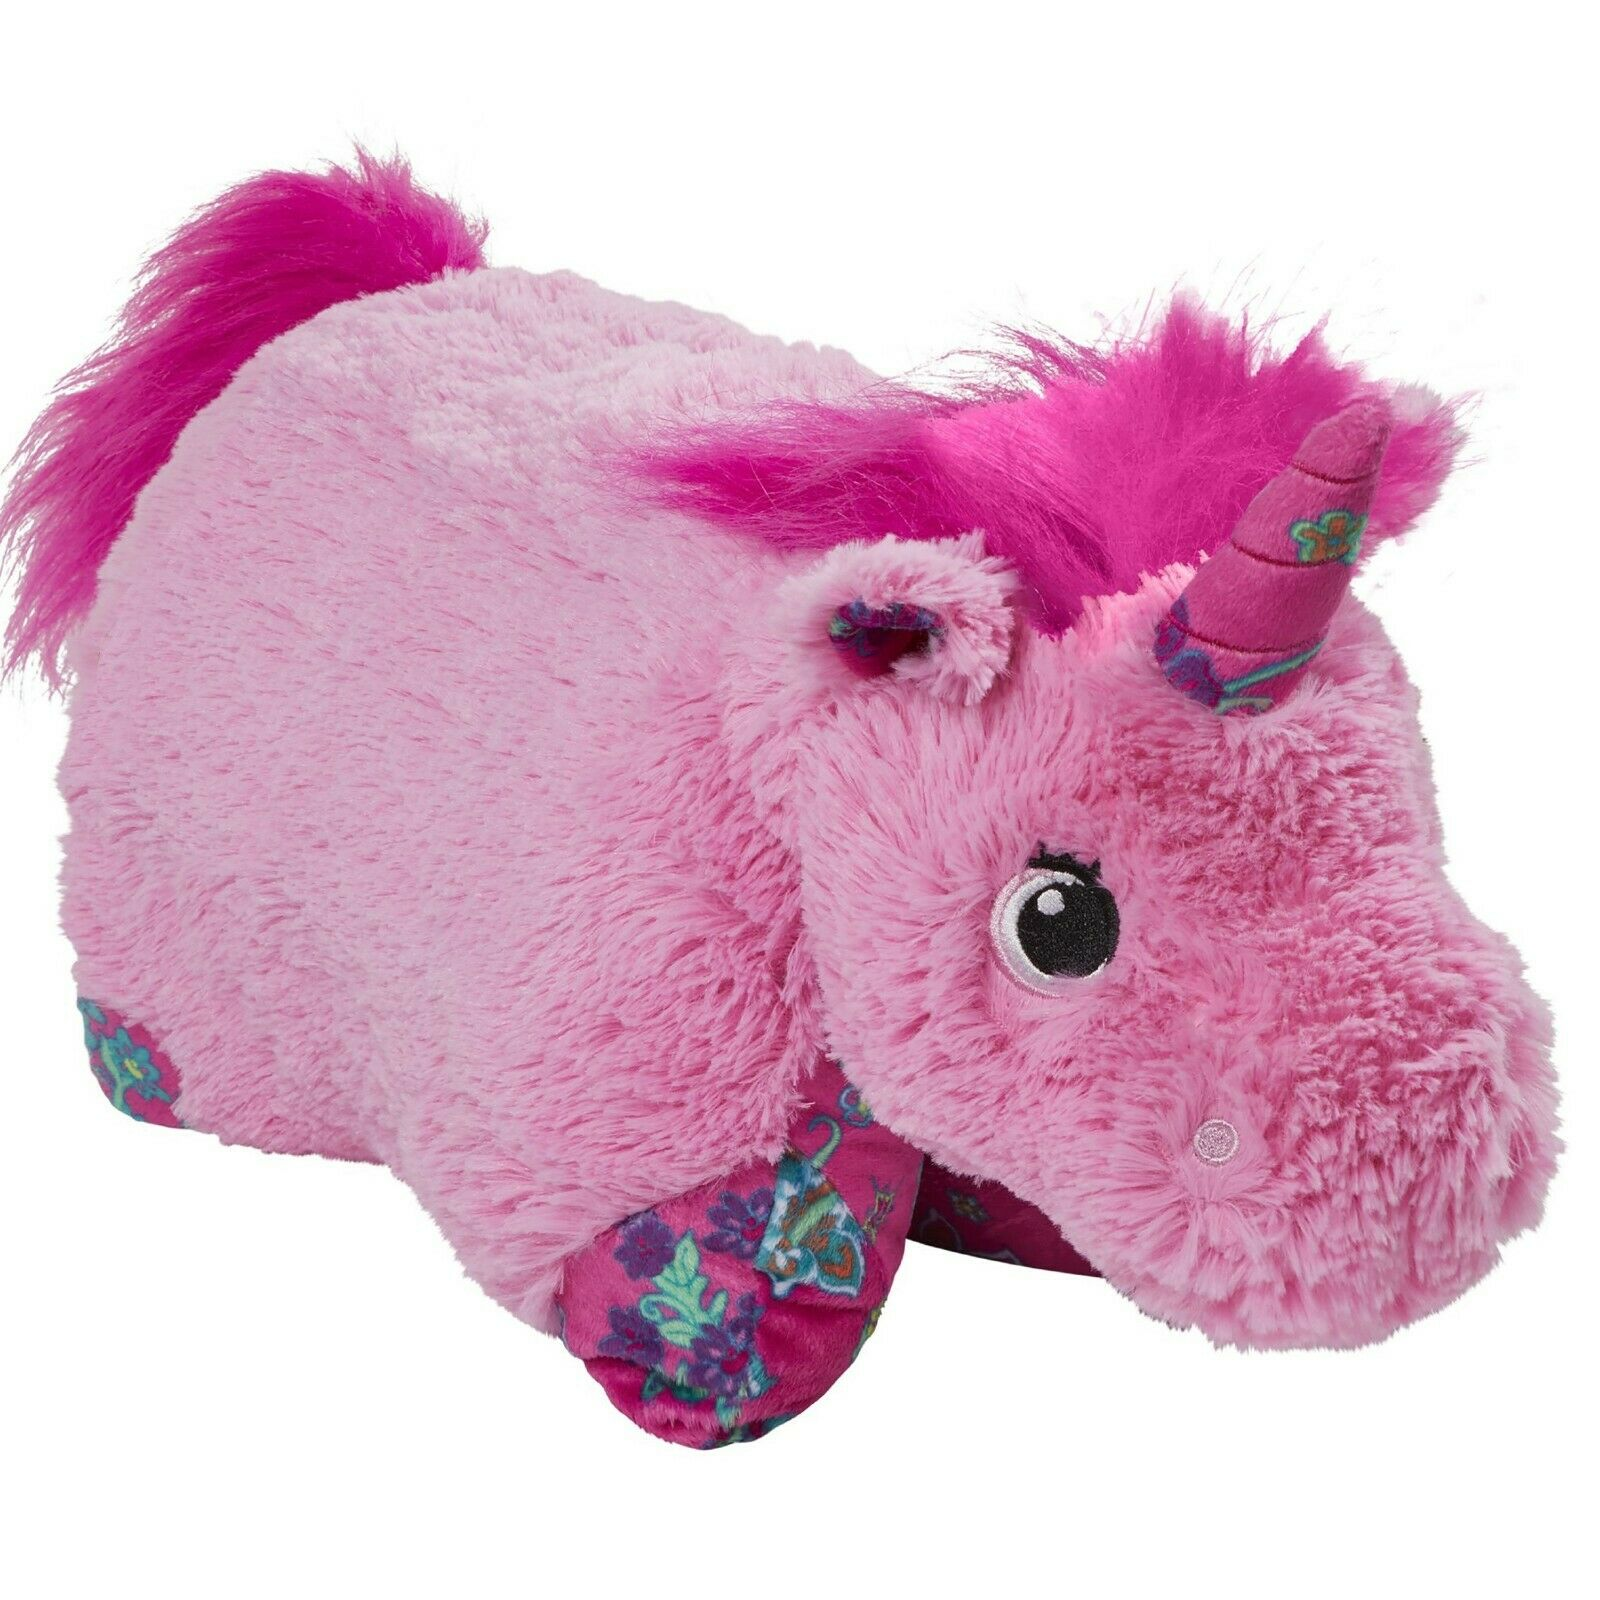 "Pillow Pets Colorful Pink Unicorn - 18"" Stuffed Animal Plush"